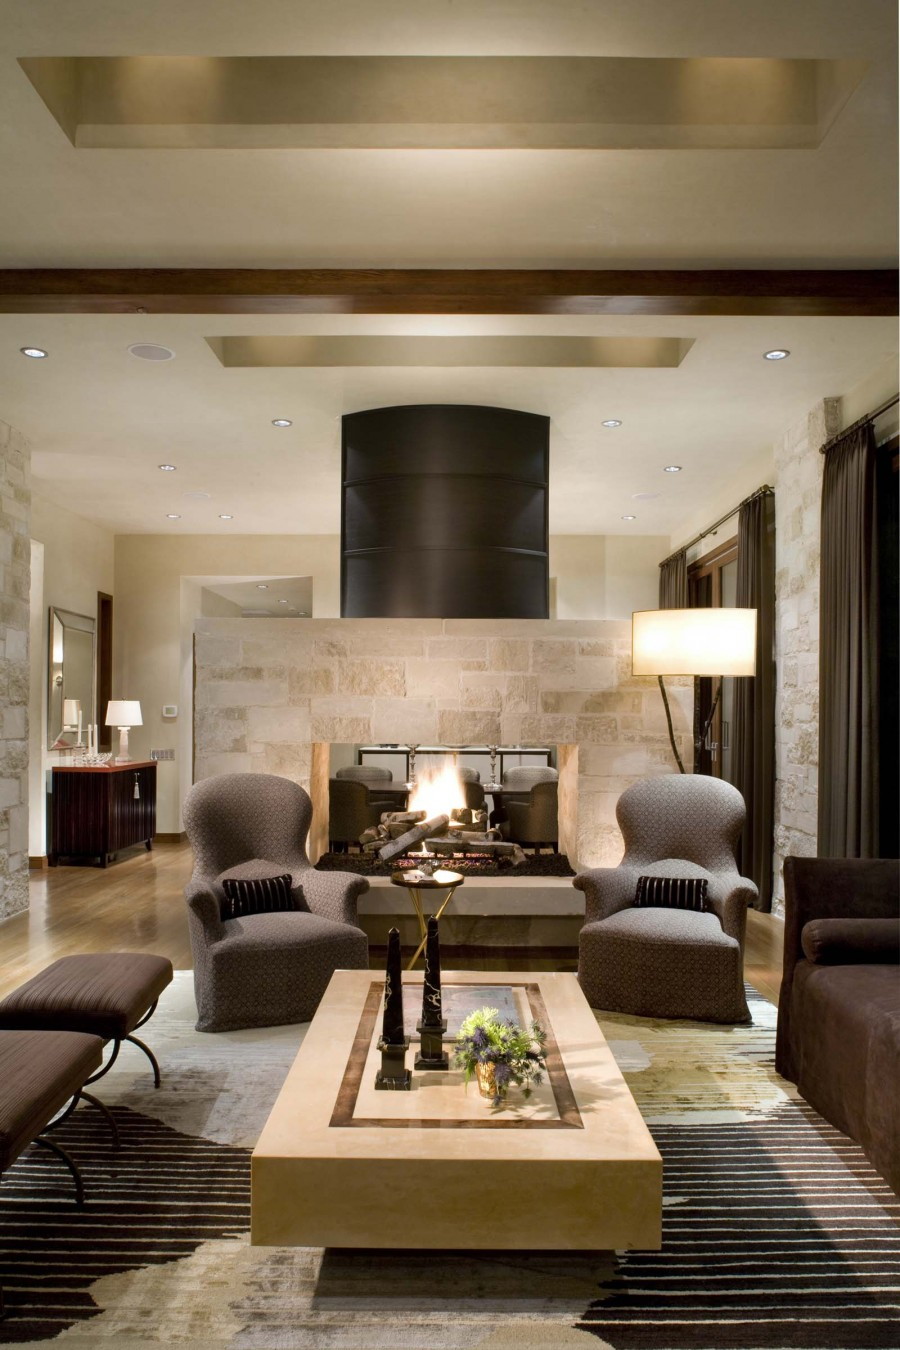 Room Design: 16 Fabulous Earth Tones Living Room Designs